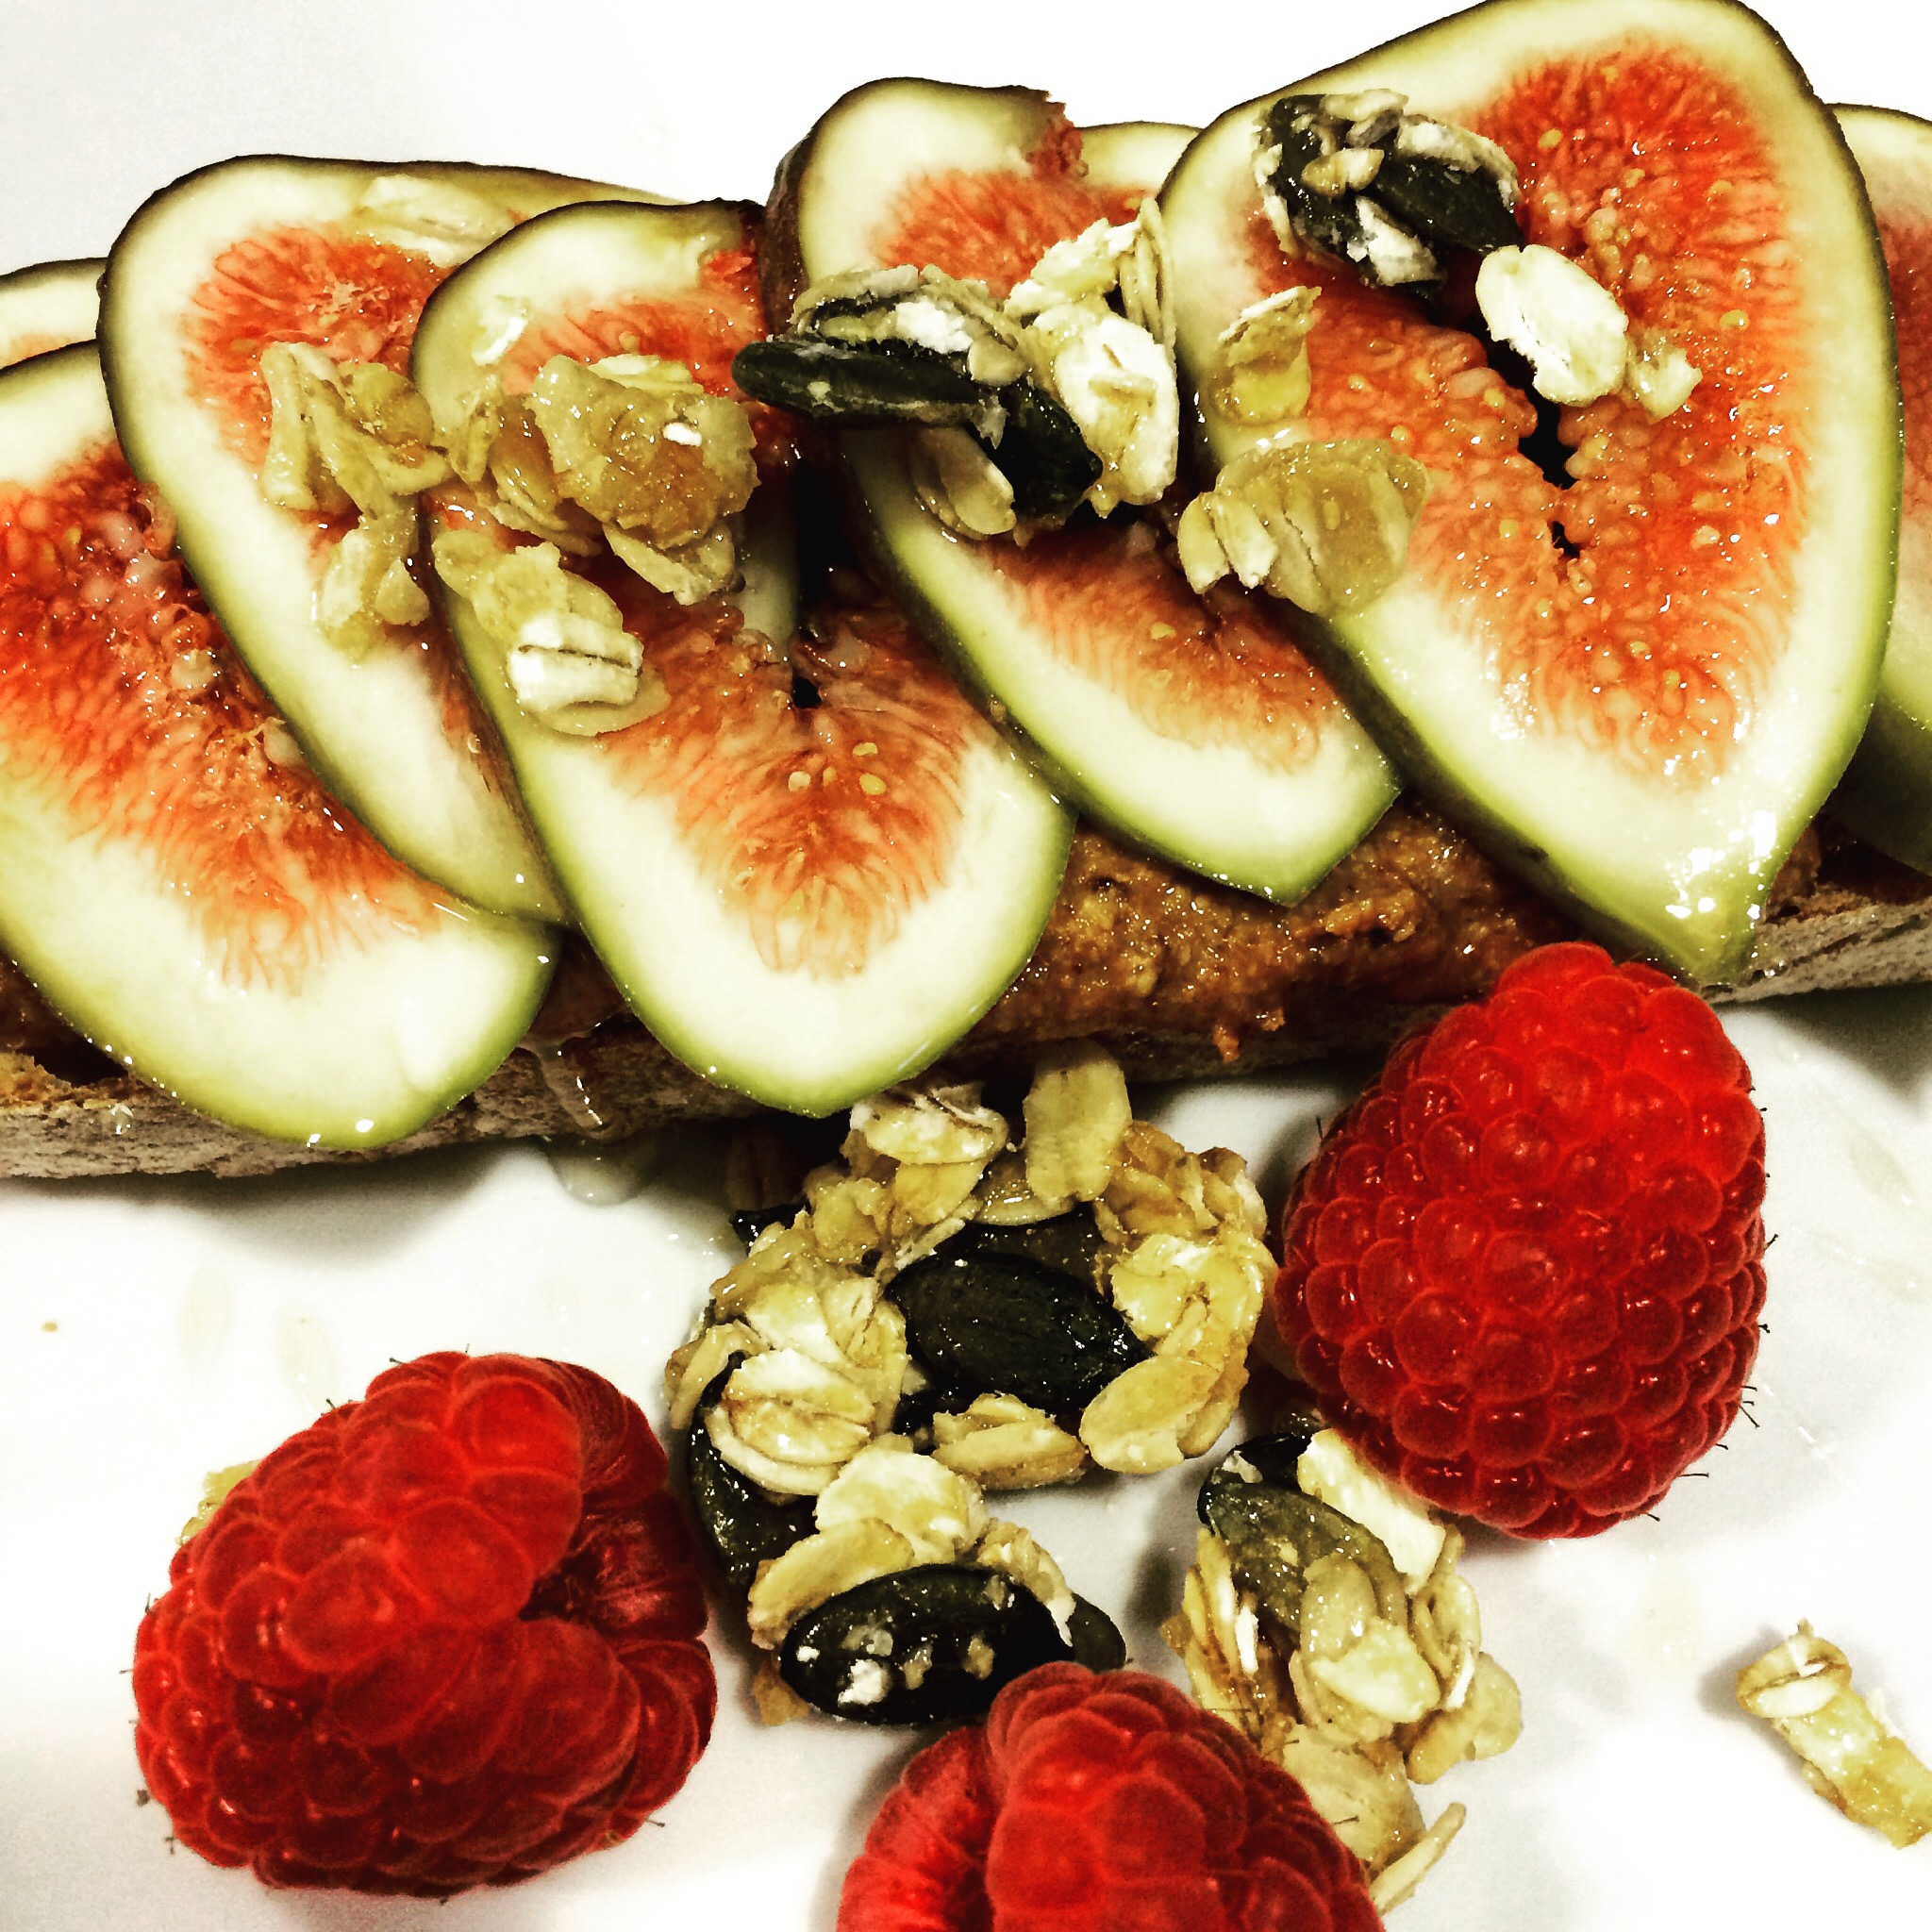 Homemade almond butter toast with fresh figs and granola